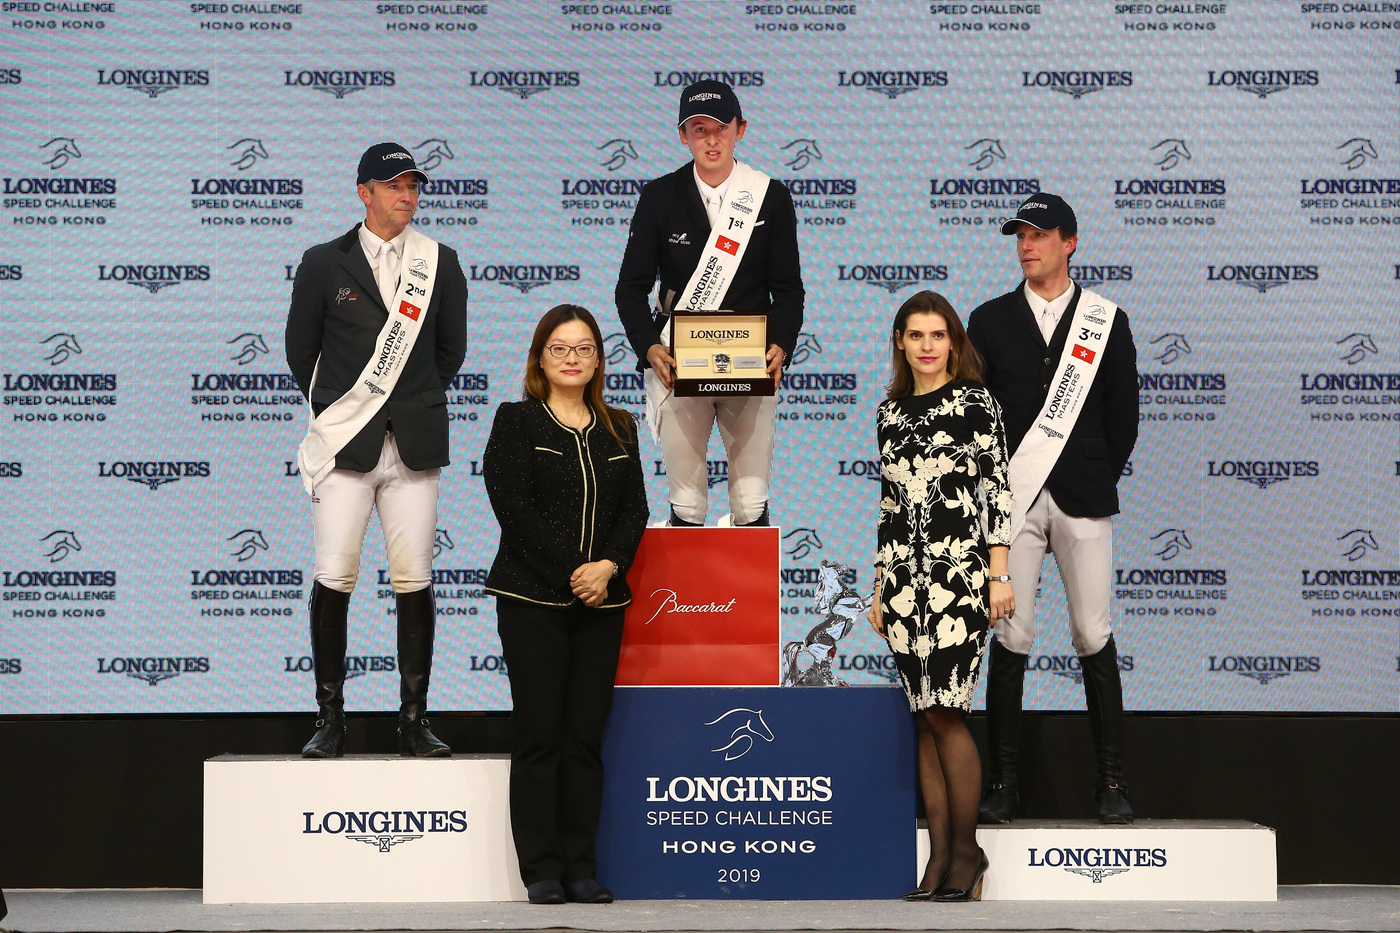 Longines Show Jumping Event: The 2019 Longines Masters of Hong Kong: a perfect mix of sports achievements and glamour  8